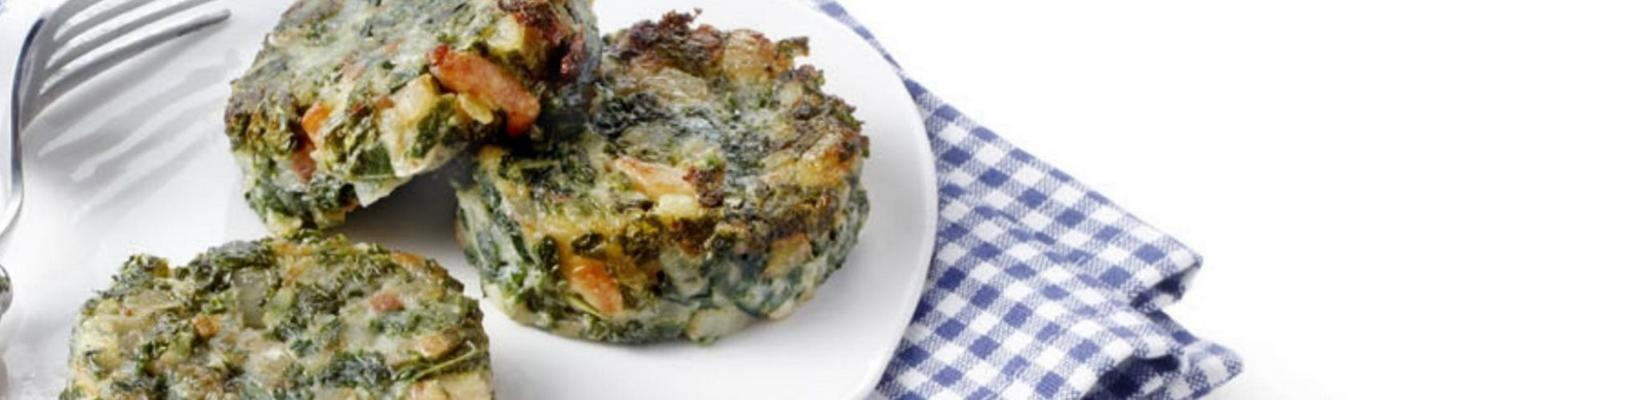 bubble and squeak of kale with bacon